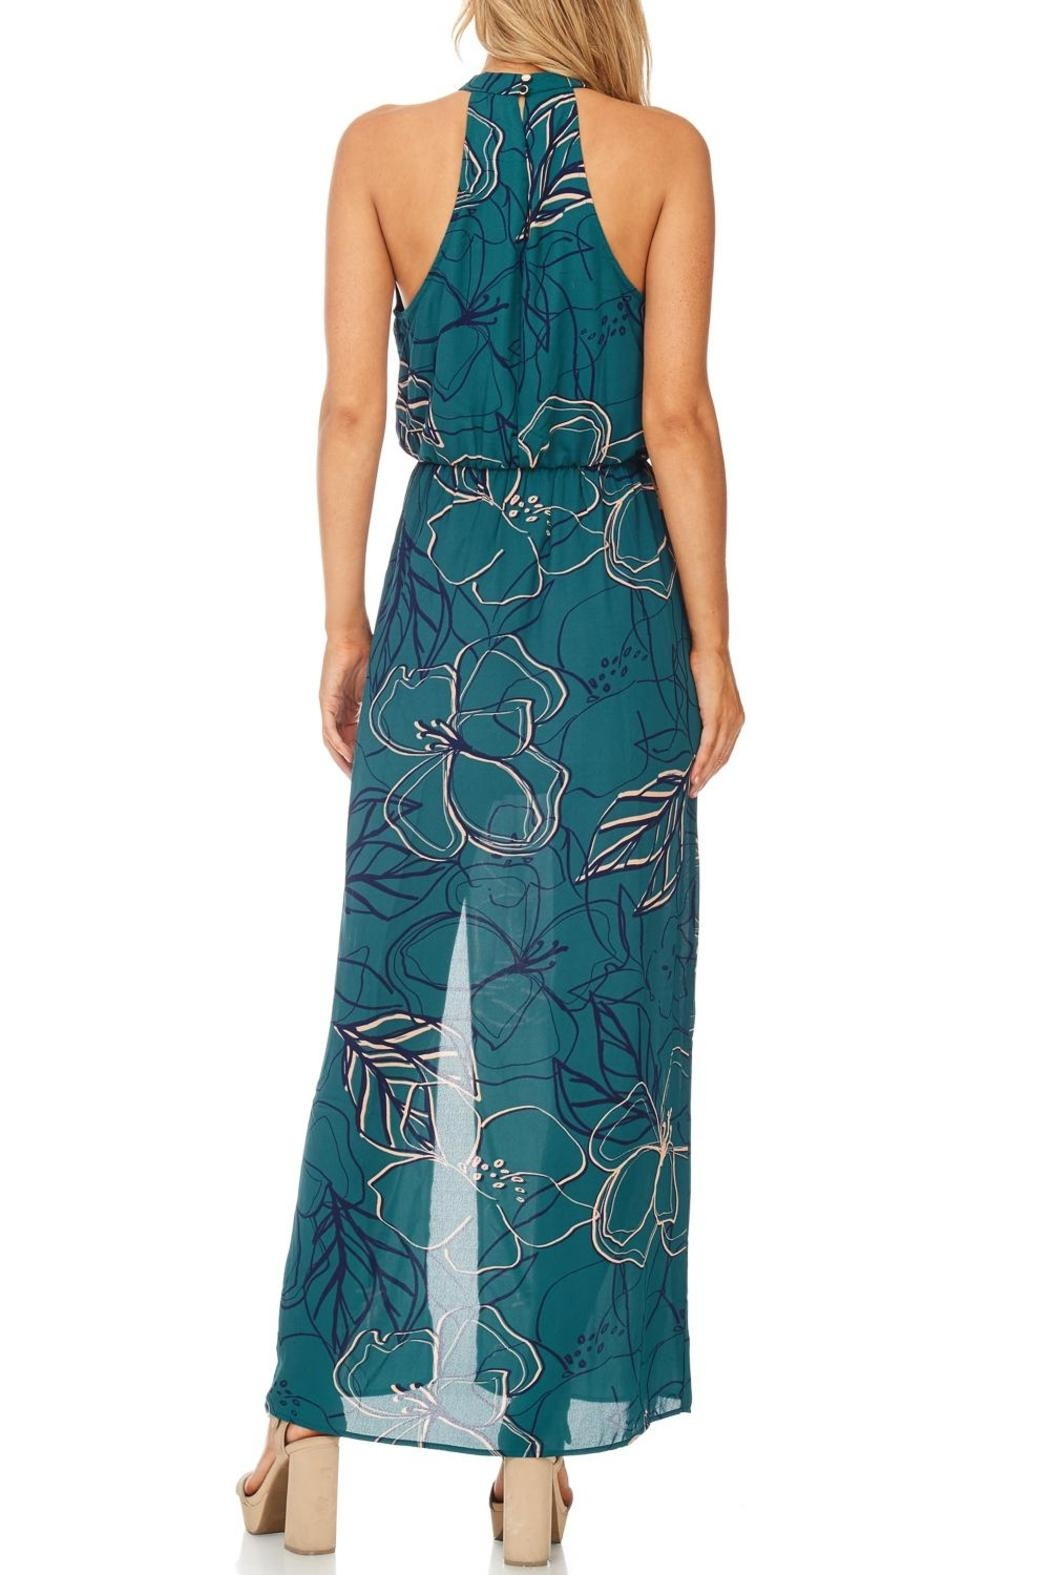 Everly Jade Maxi Halter Dress - Back Cropped Image